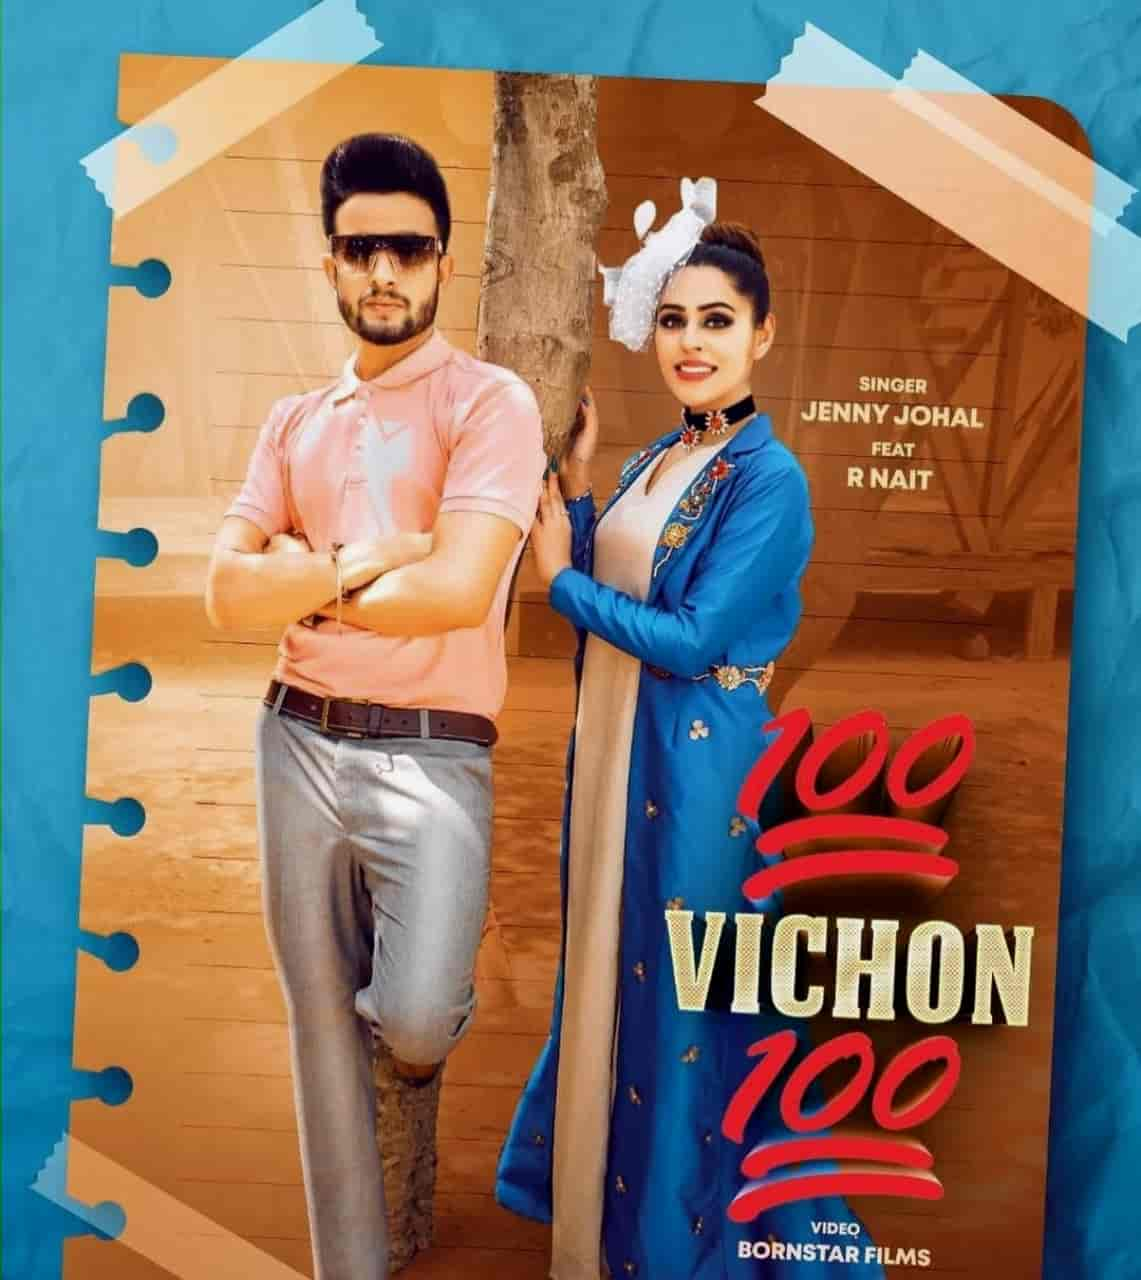 100 Vichon 100 Punjabi Song Image Features R Nait And Jenny Johal